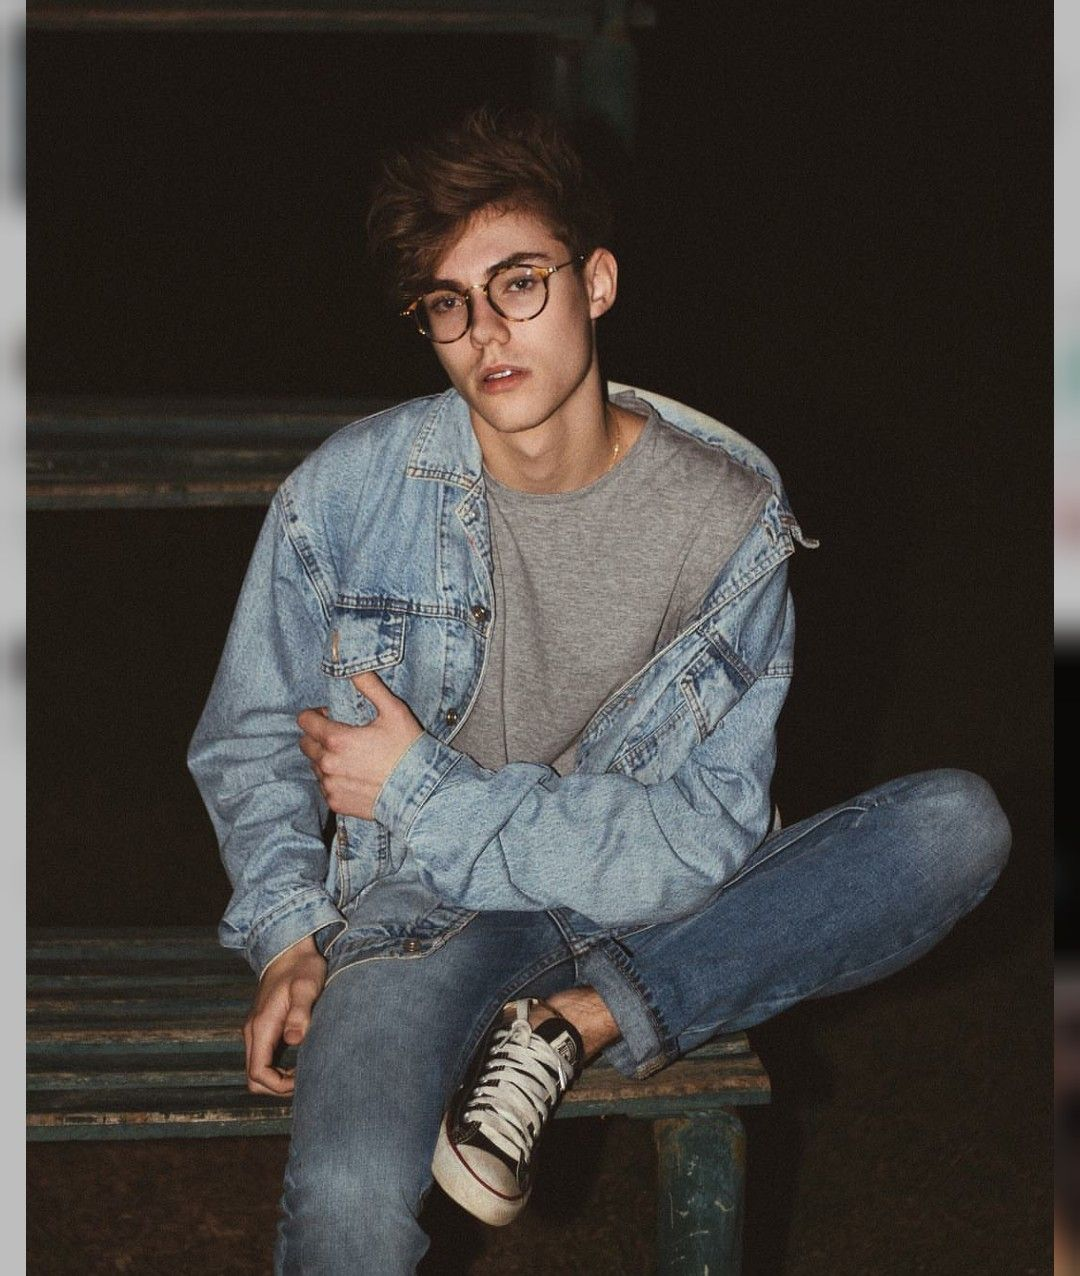 Lightroom Editing Presets Www Cityturtles Etsy Com Mens Outfits 80s Fashion Men Mens Casual Outfits